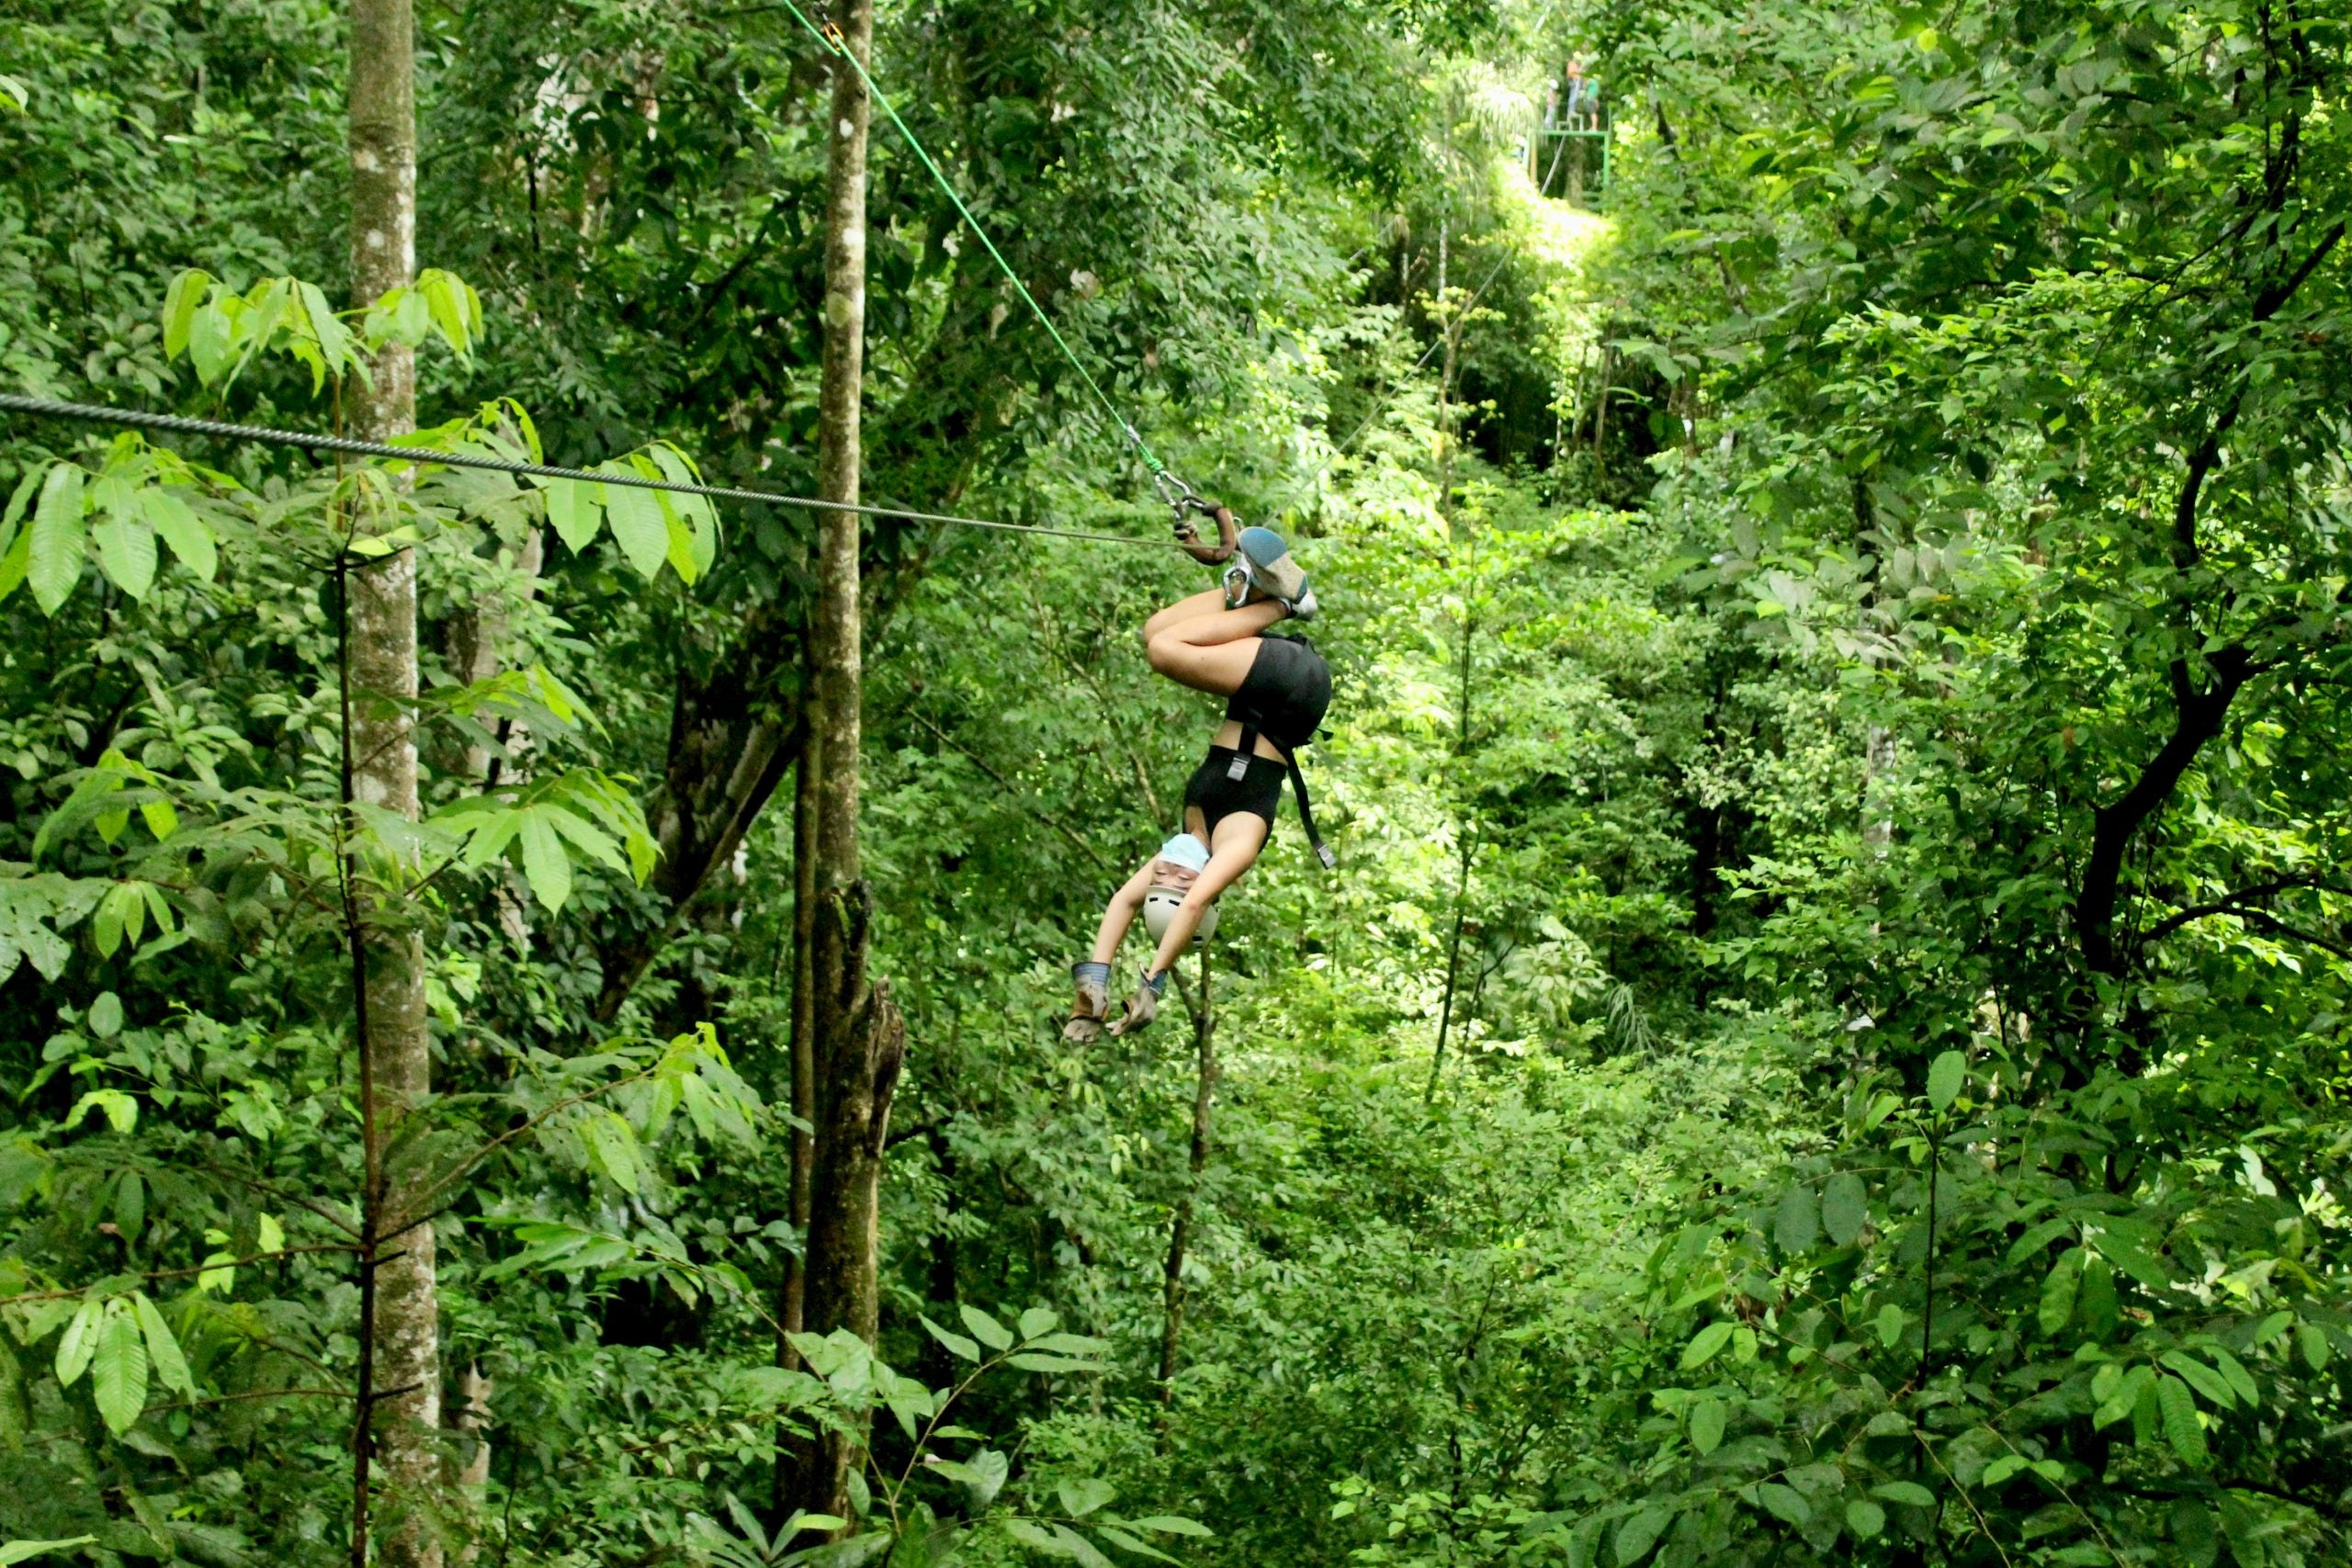 Welcome to the jungle: How I redeemed 100,000 Chase points to book a Costa Rica trip of a lifetime